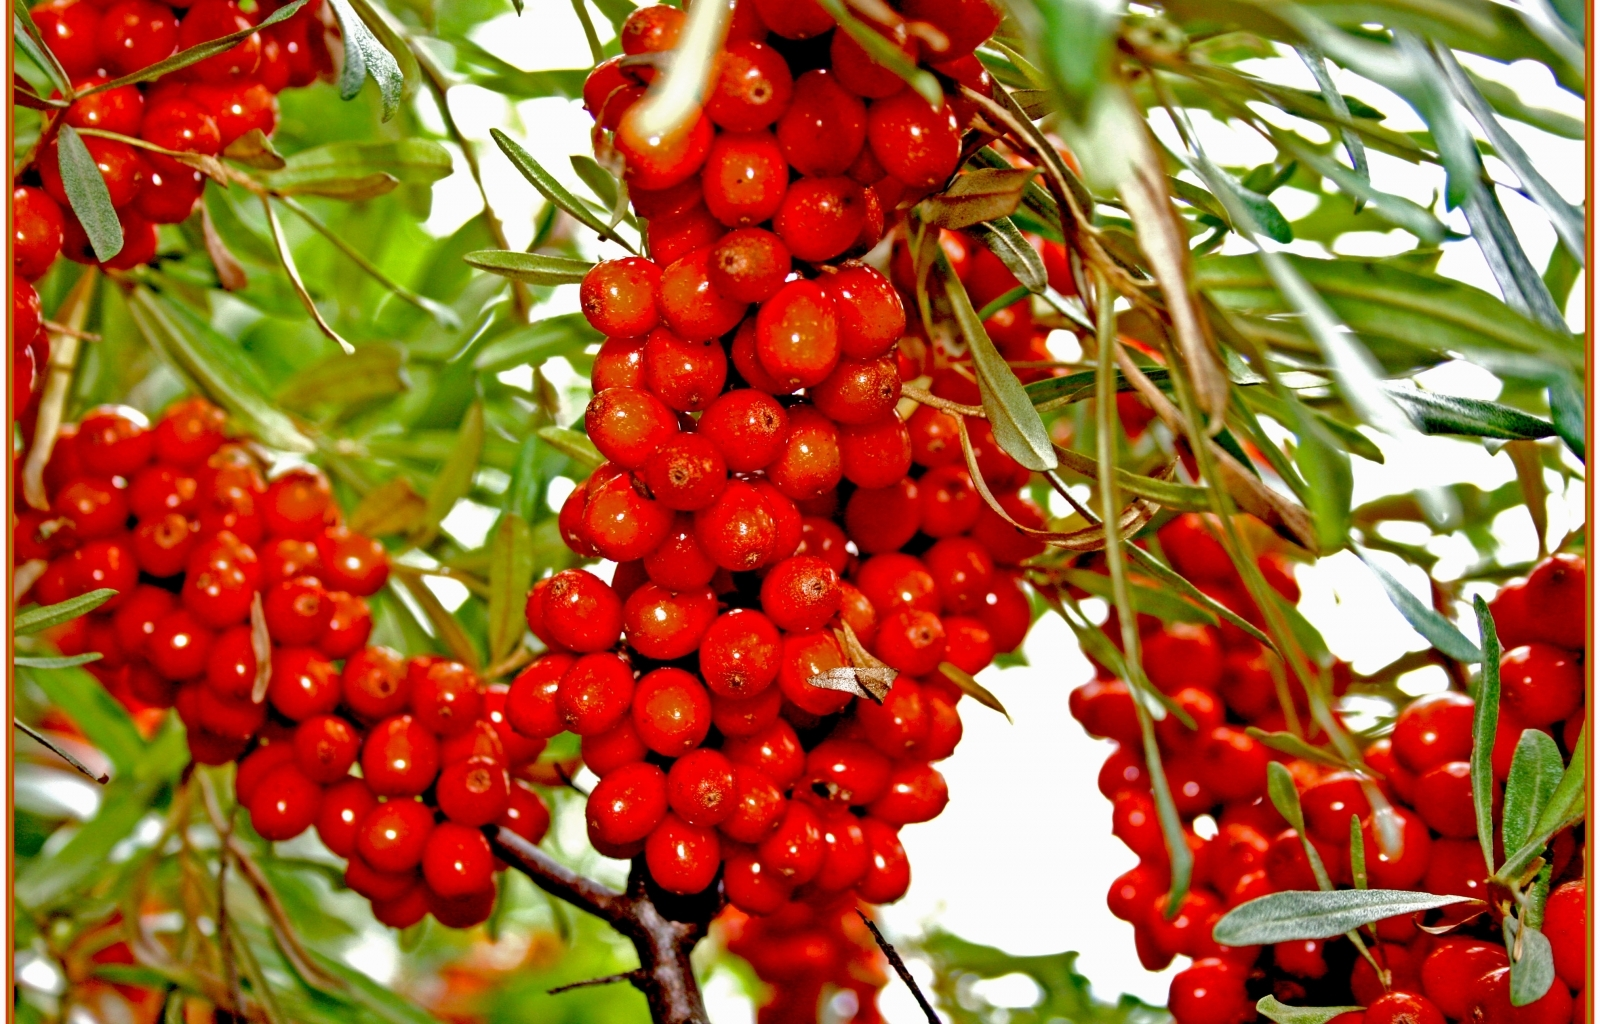 8836 download wallpaper Plants, Fruits, Food, Berries screensavers and pictures for free